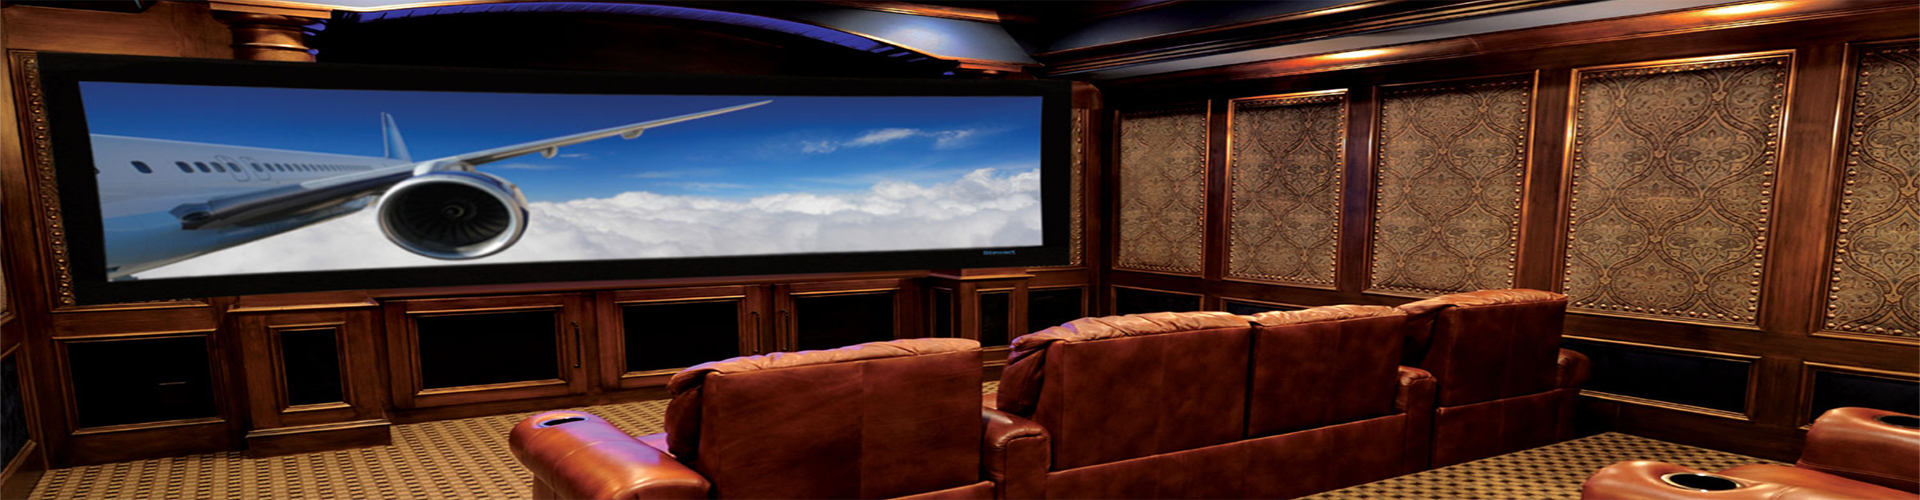 AVC Technologies Slide - Home Theater